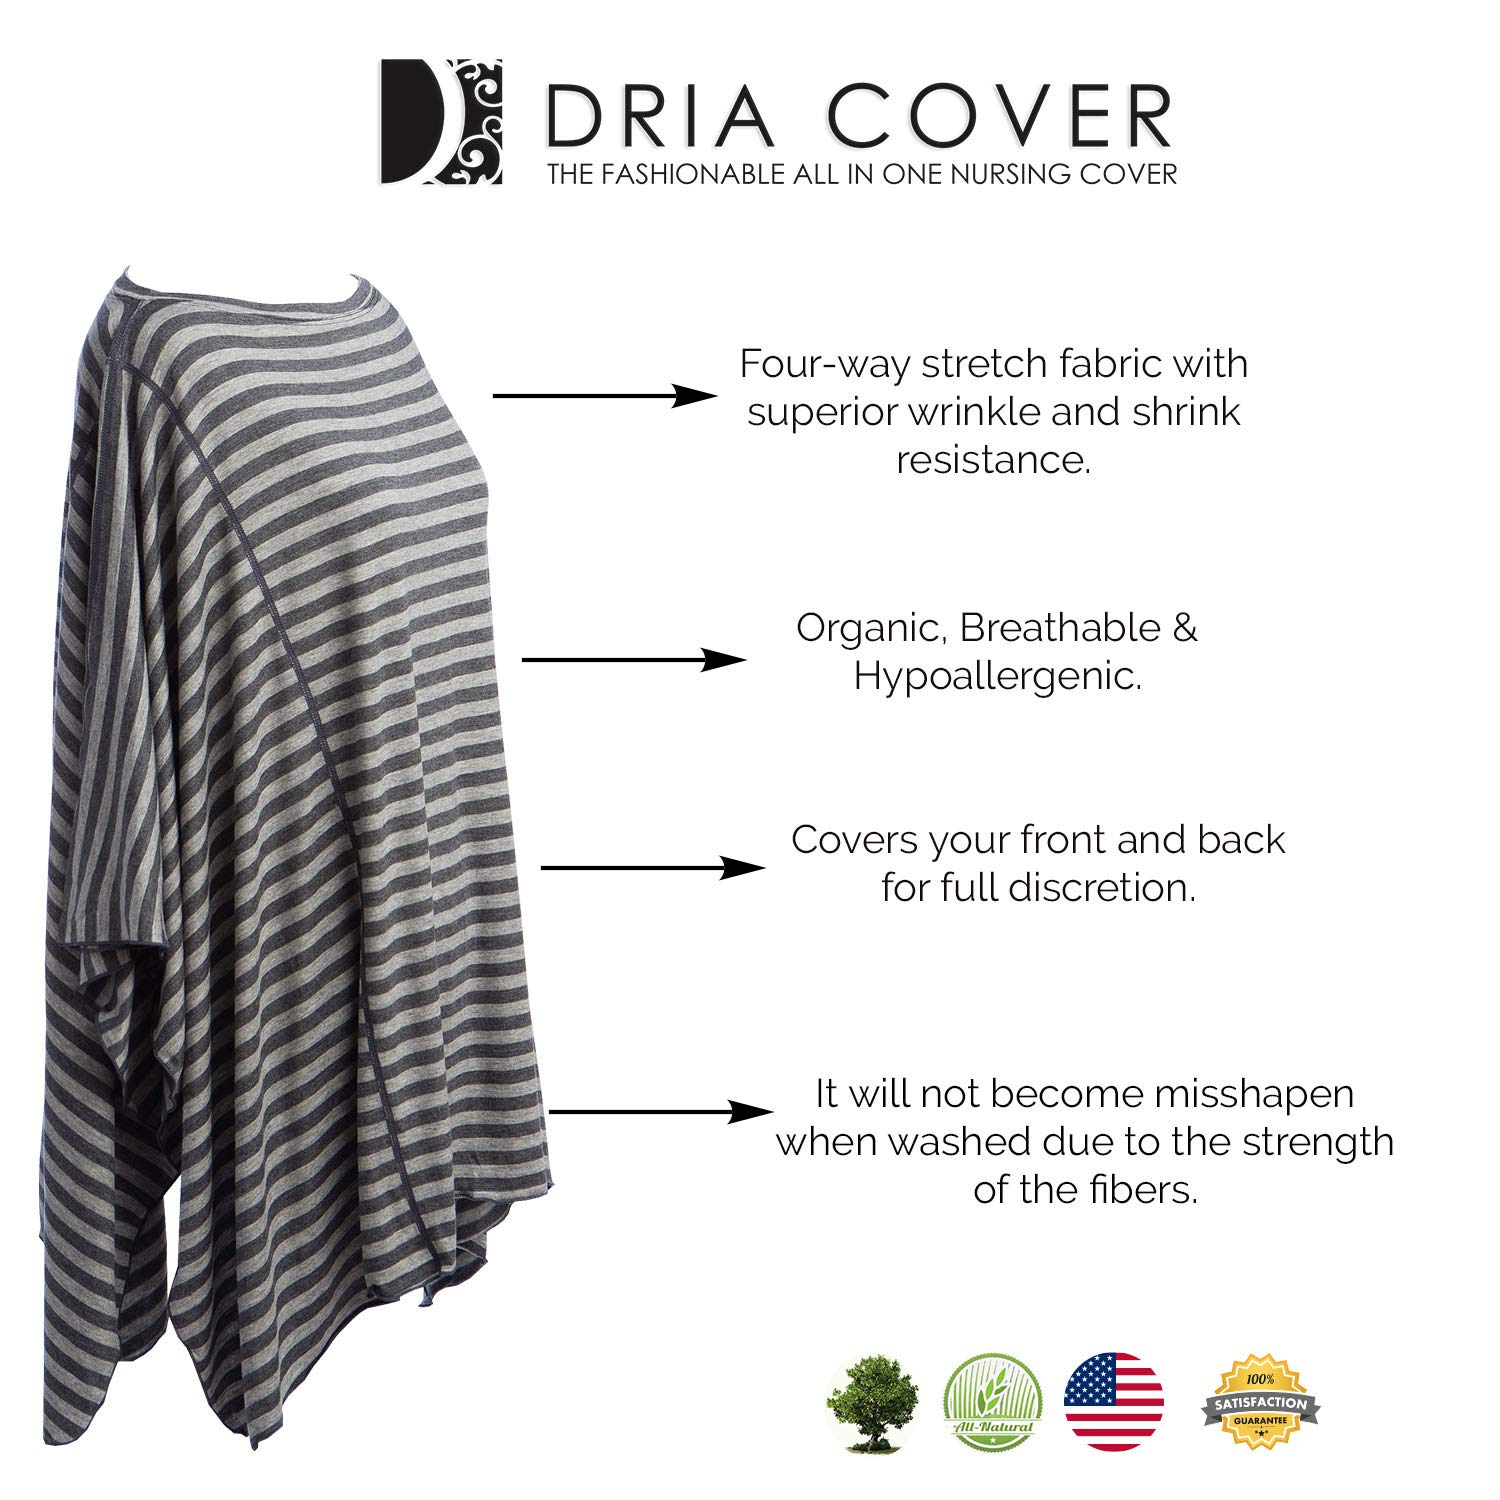 Fashionable Nursing Covers by DRIA - 'The All-In-One, Stroller Cover, Car Seat Cover' - Made in USA from Premium Four Way Stretch and Breathable Modal Fabric (Oslo Style: Grey Stripe) by DRIA Cover (Image #8)